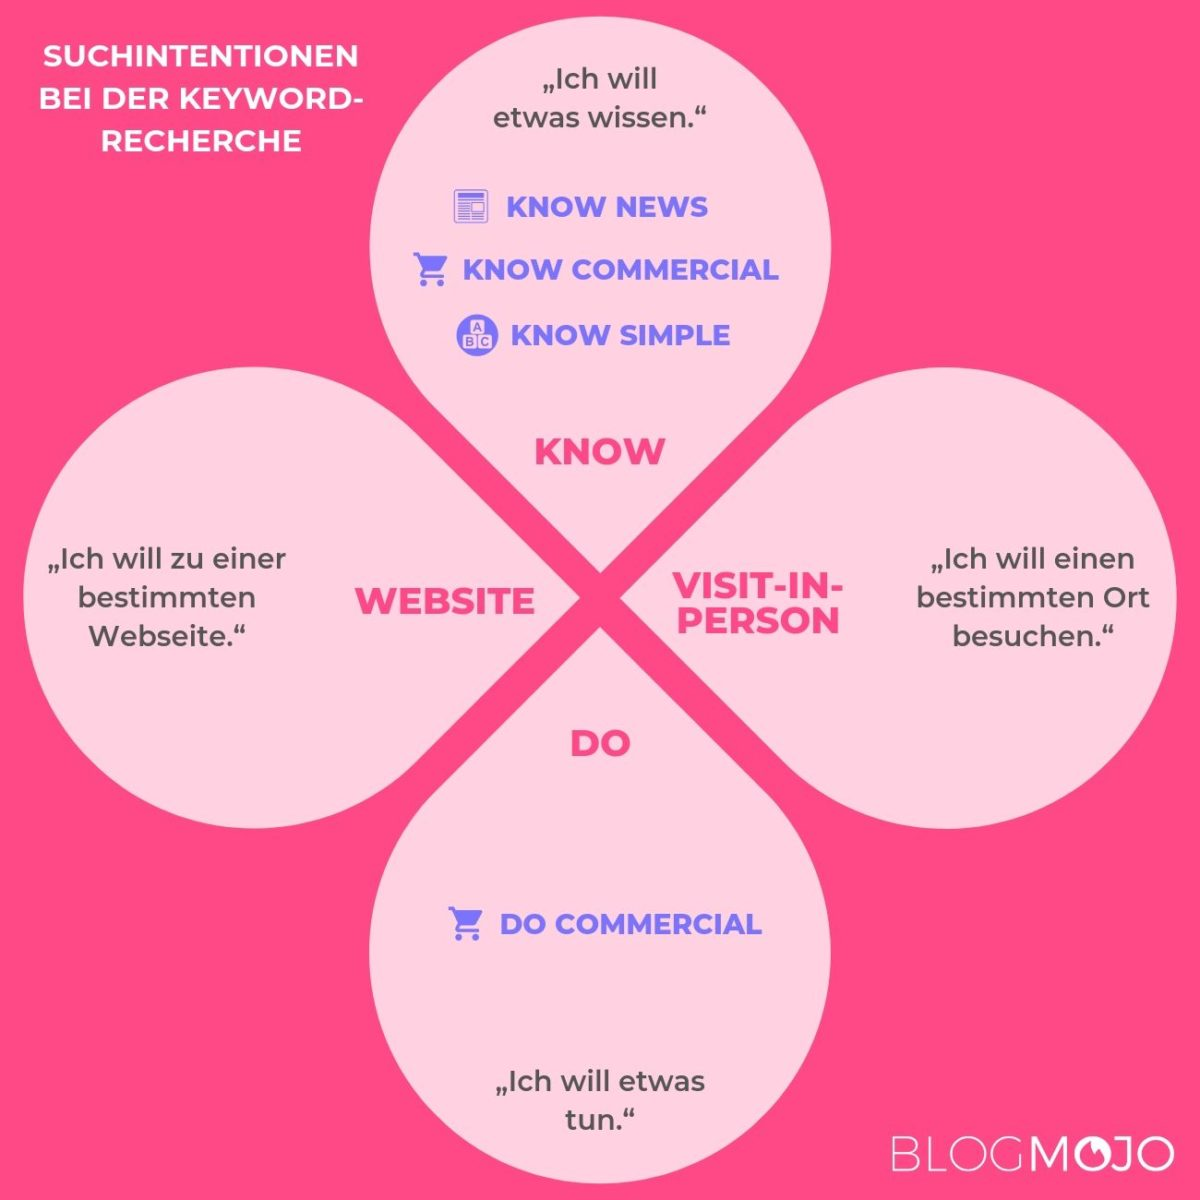 Suchintentionen (Do, Know, Visit-in-Person, Website)